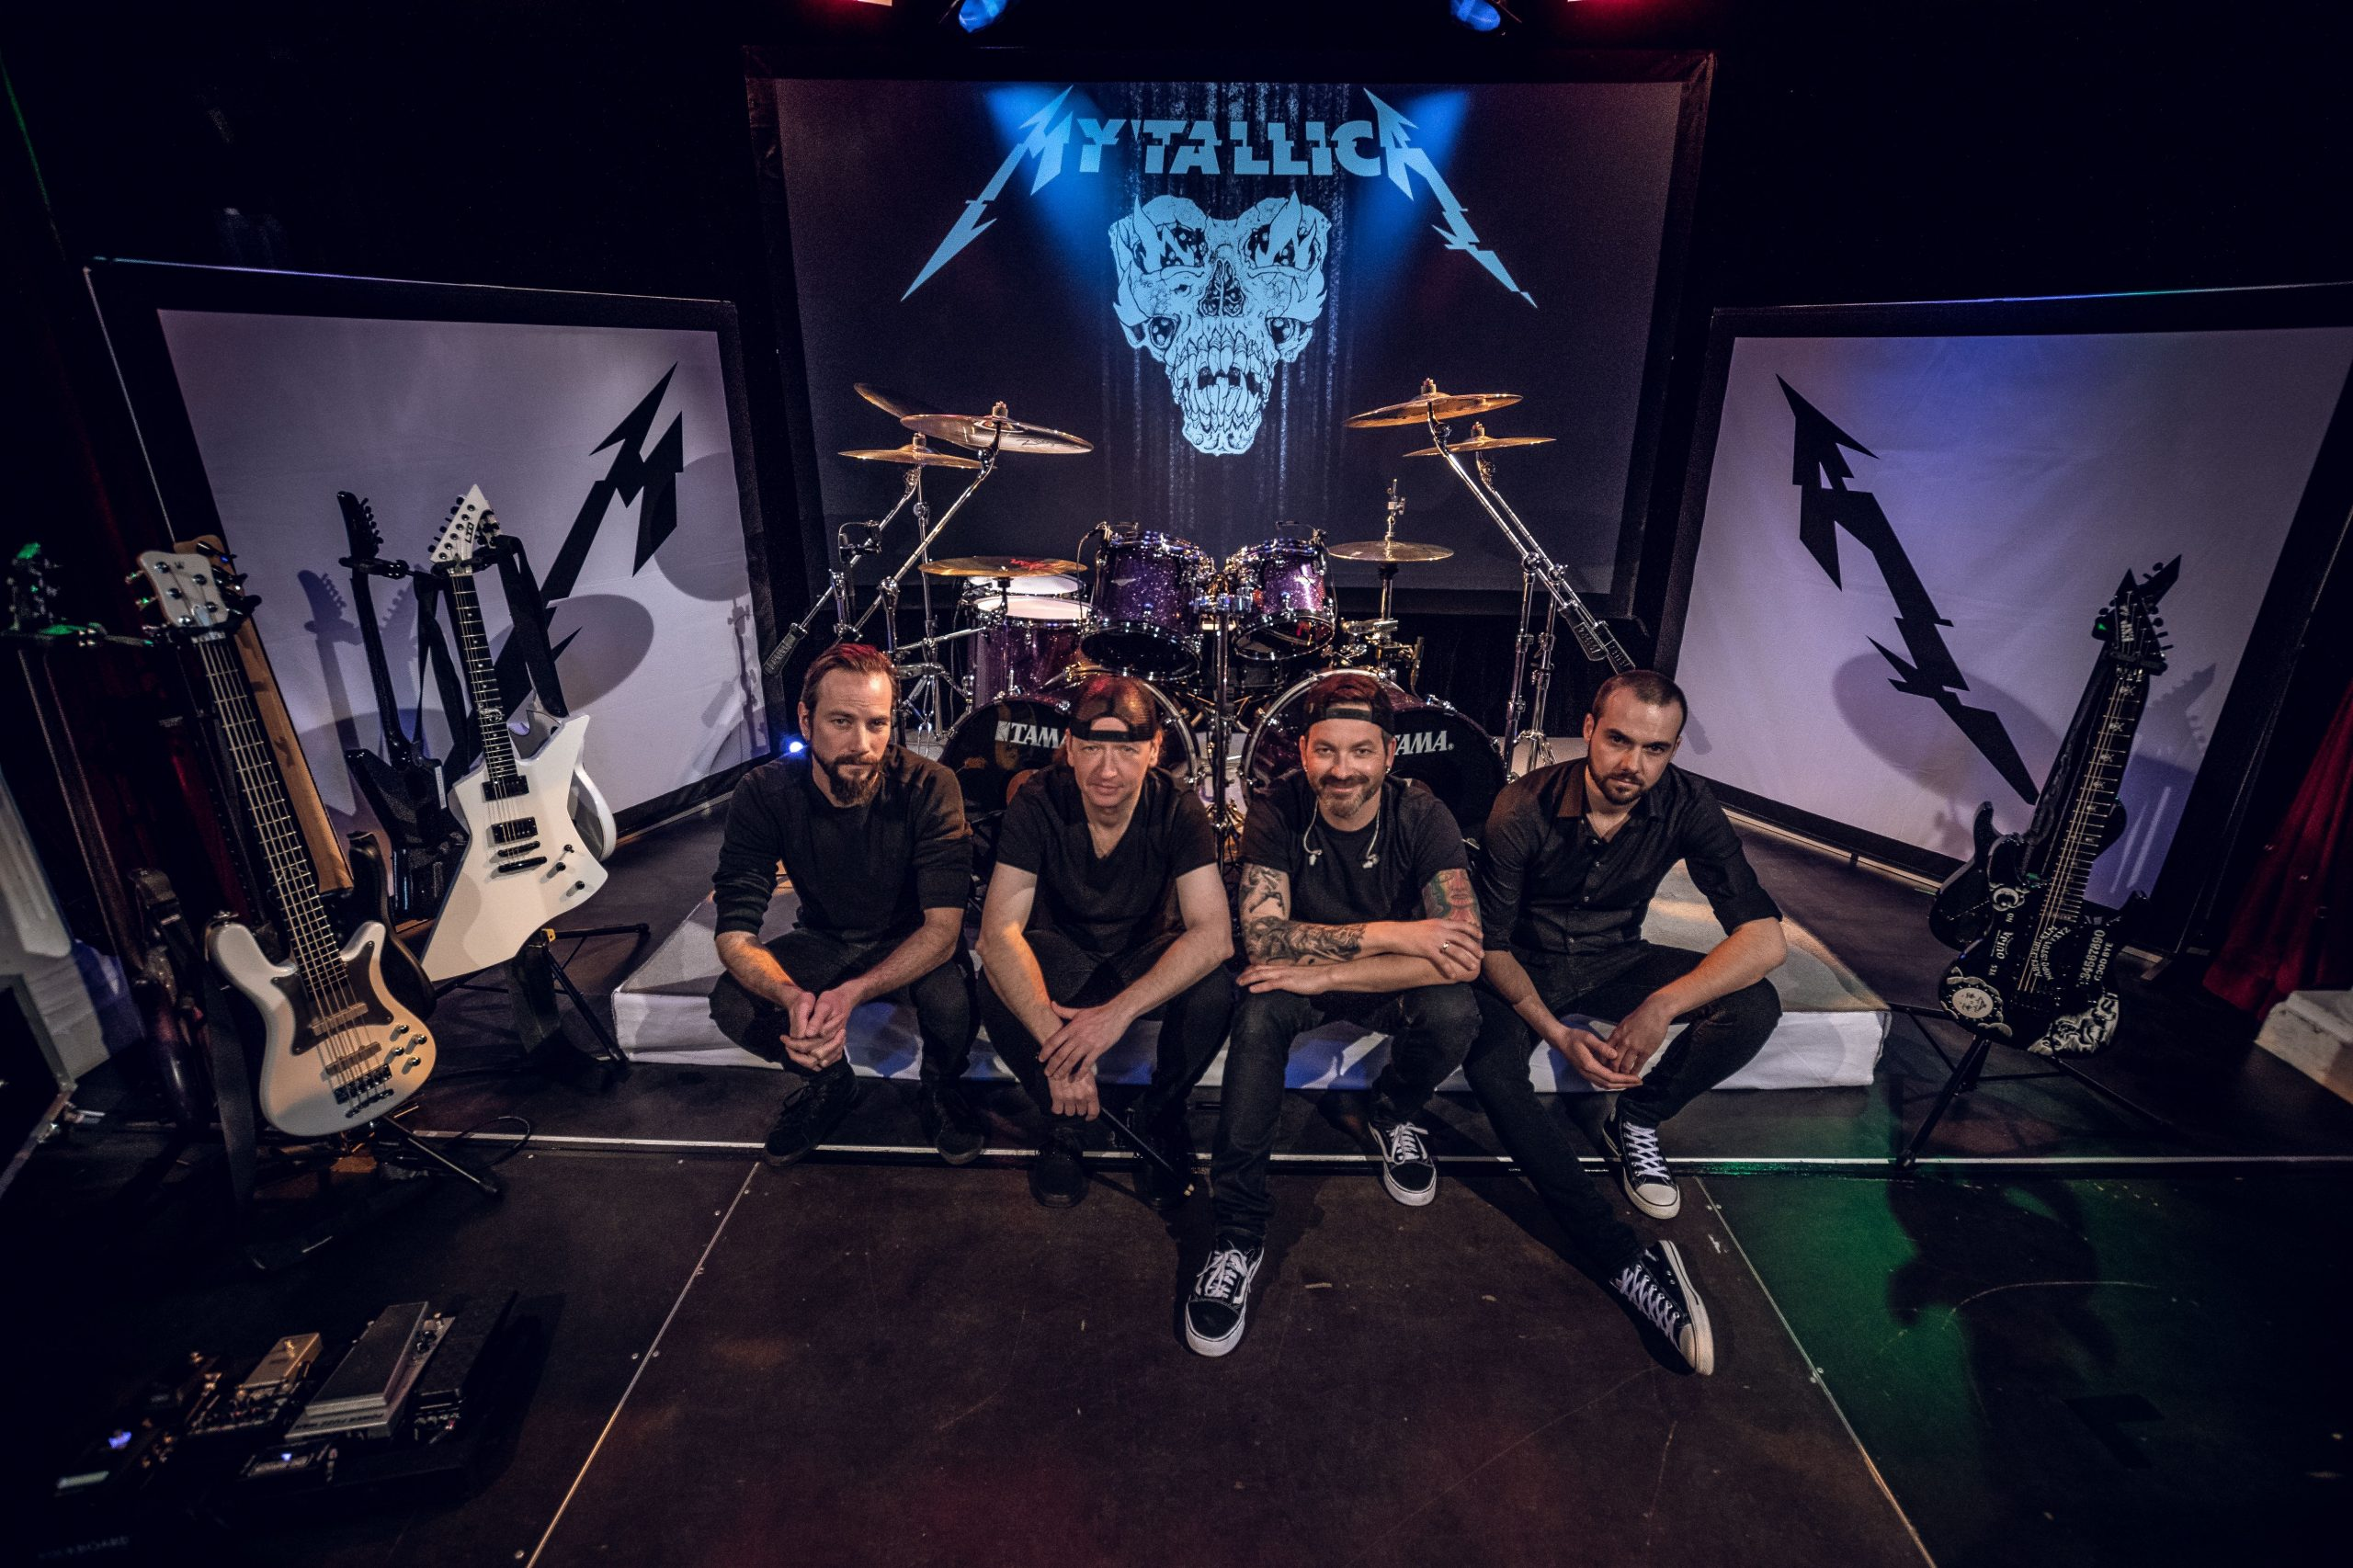 mytallica-tribute-band-page-header-stage-metti-zimmer